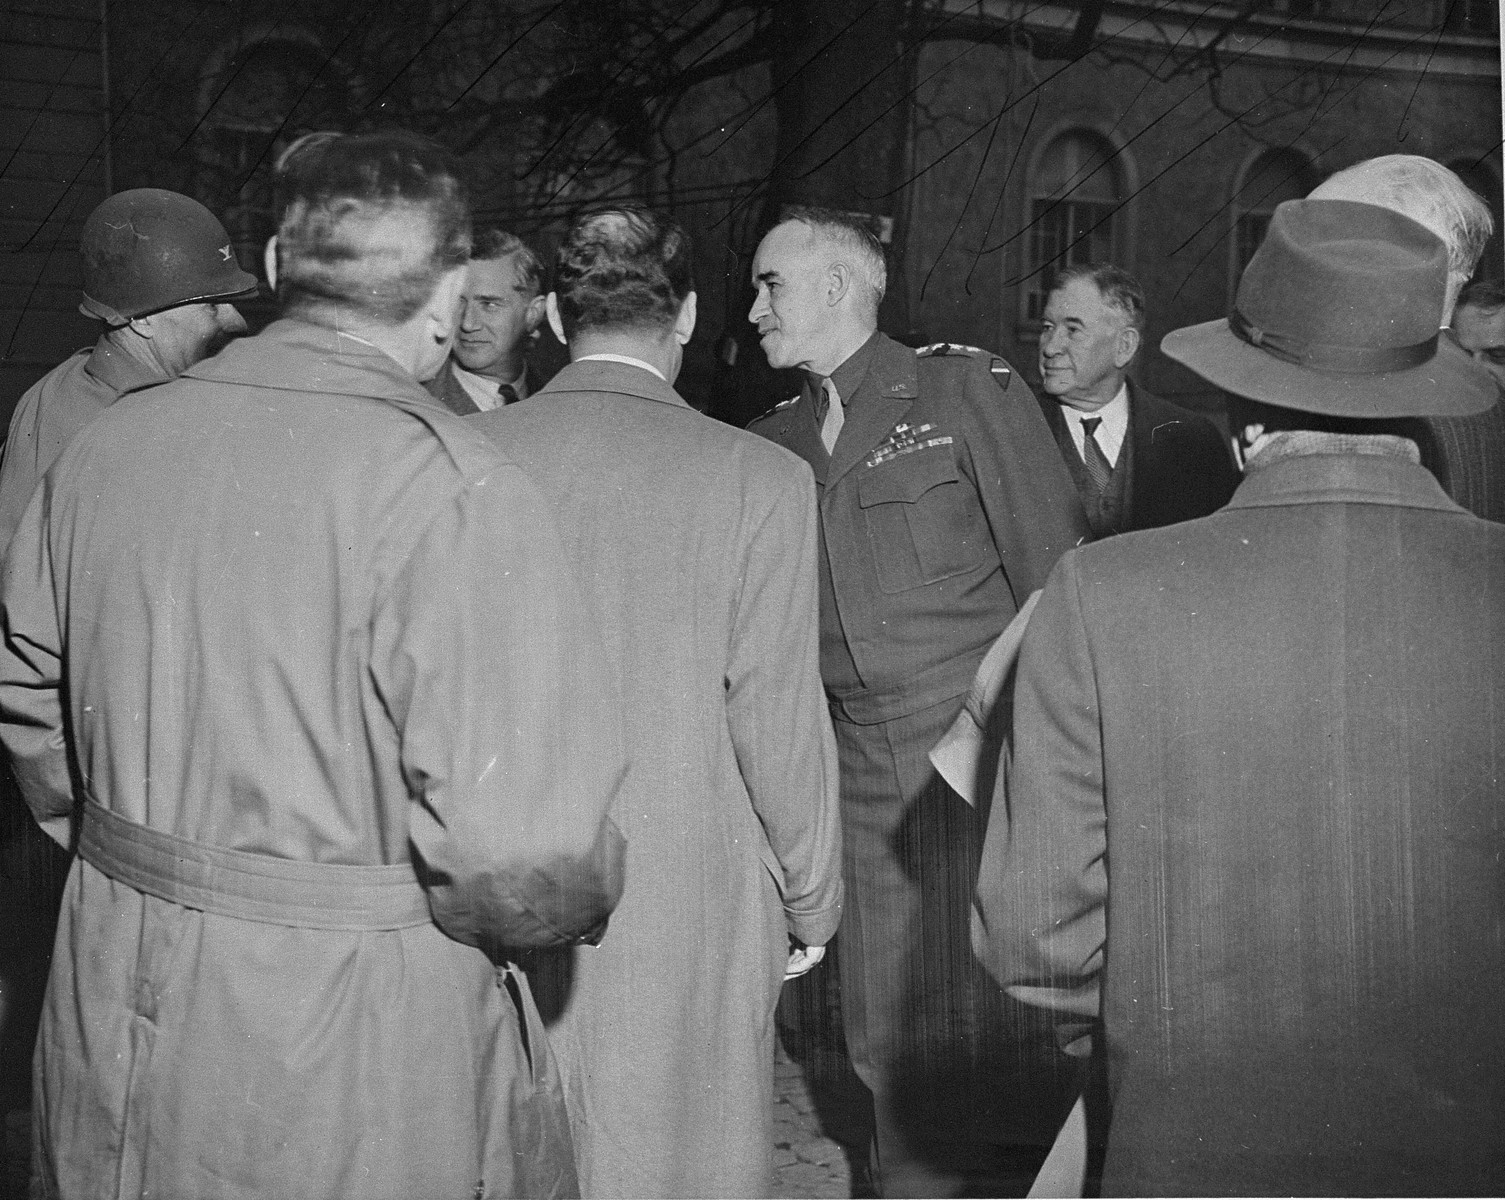 General Omar Bradley greets a group of American congressmen at his headquarters in Wiesbaden.  The congressmen are making a tour of Europe to get first hand information on German atrocities.